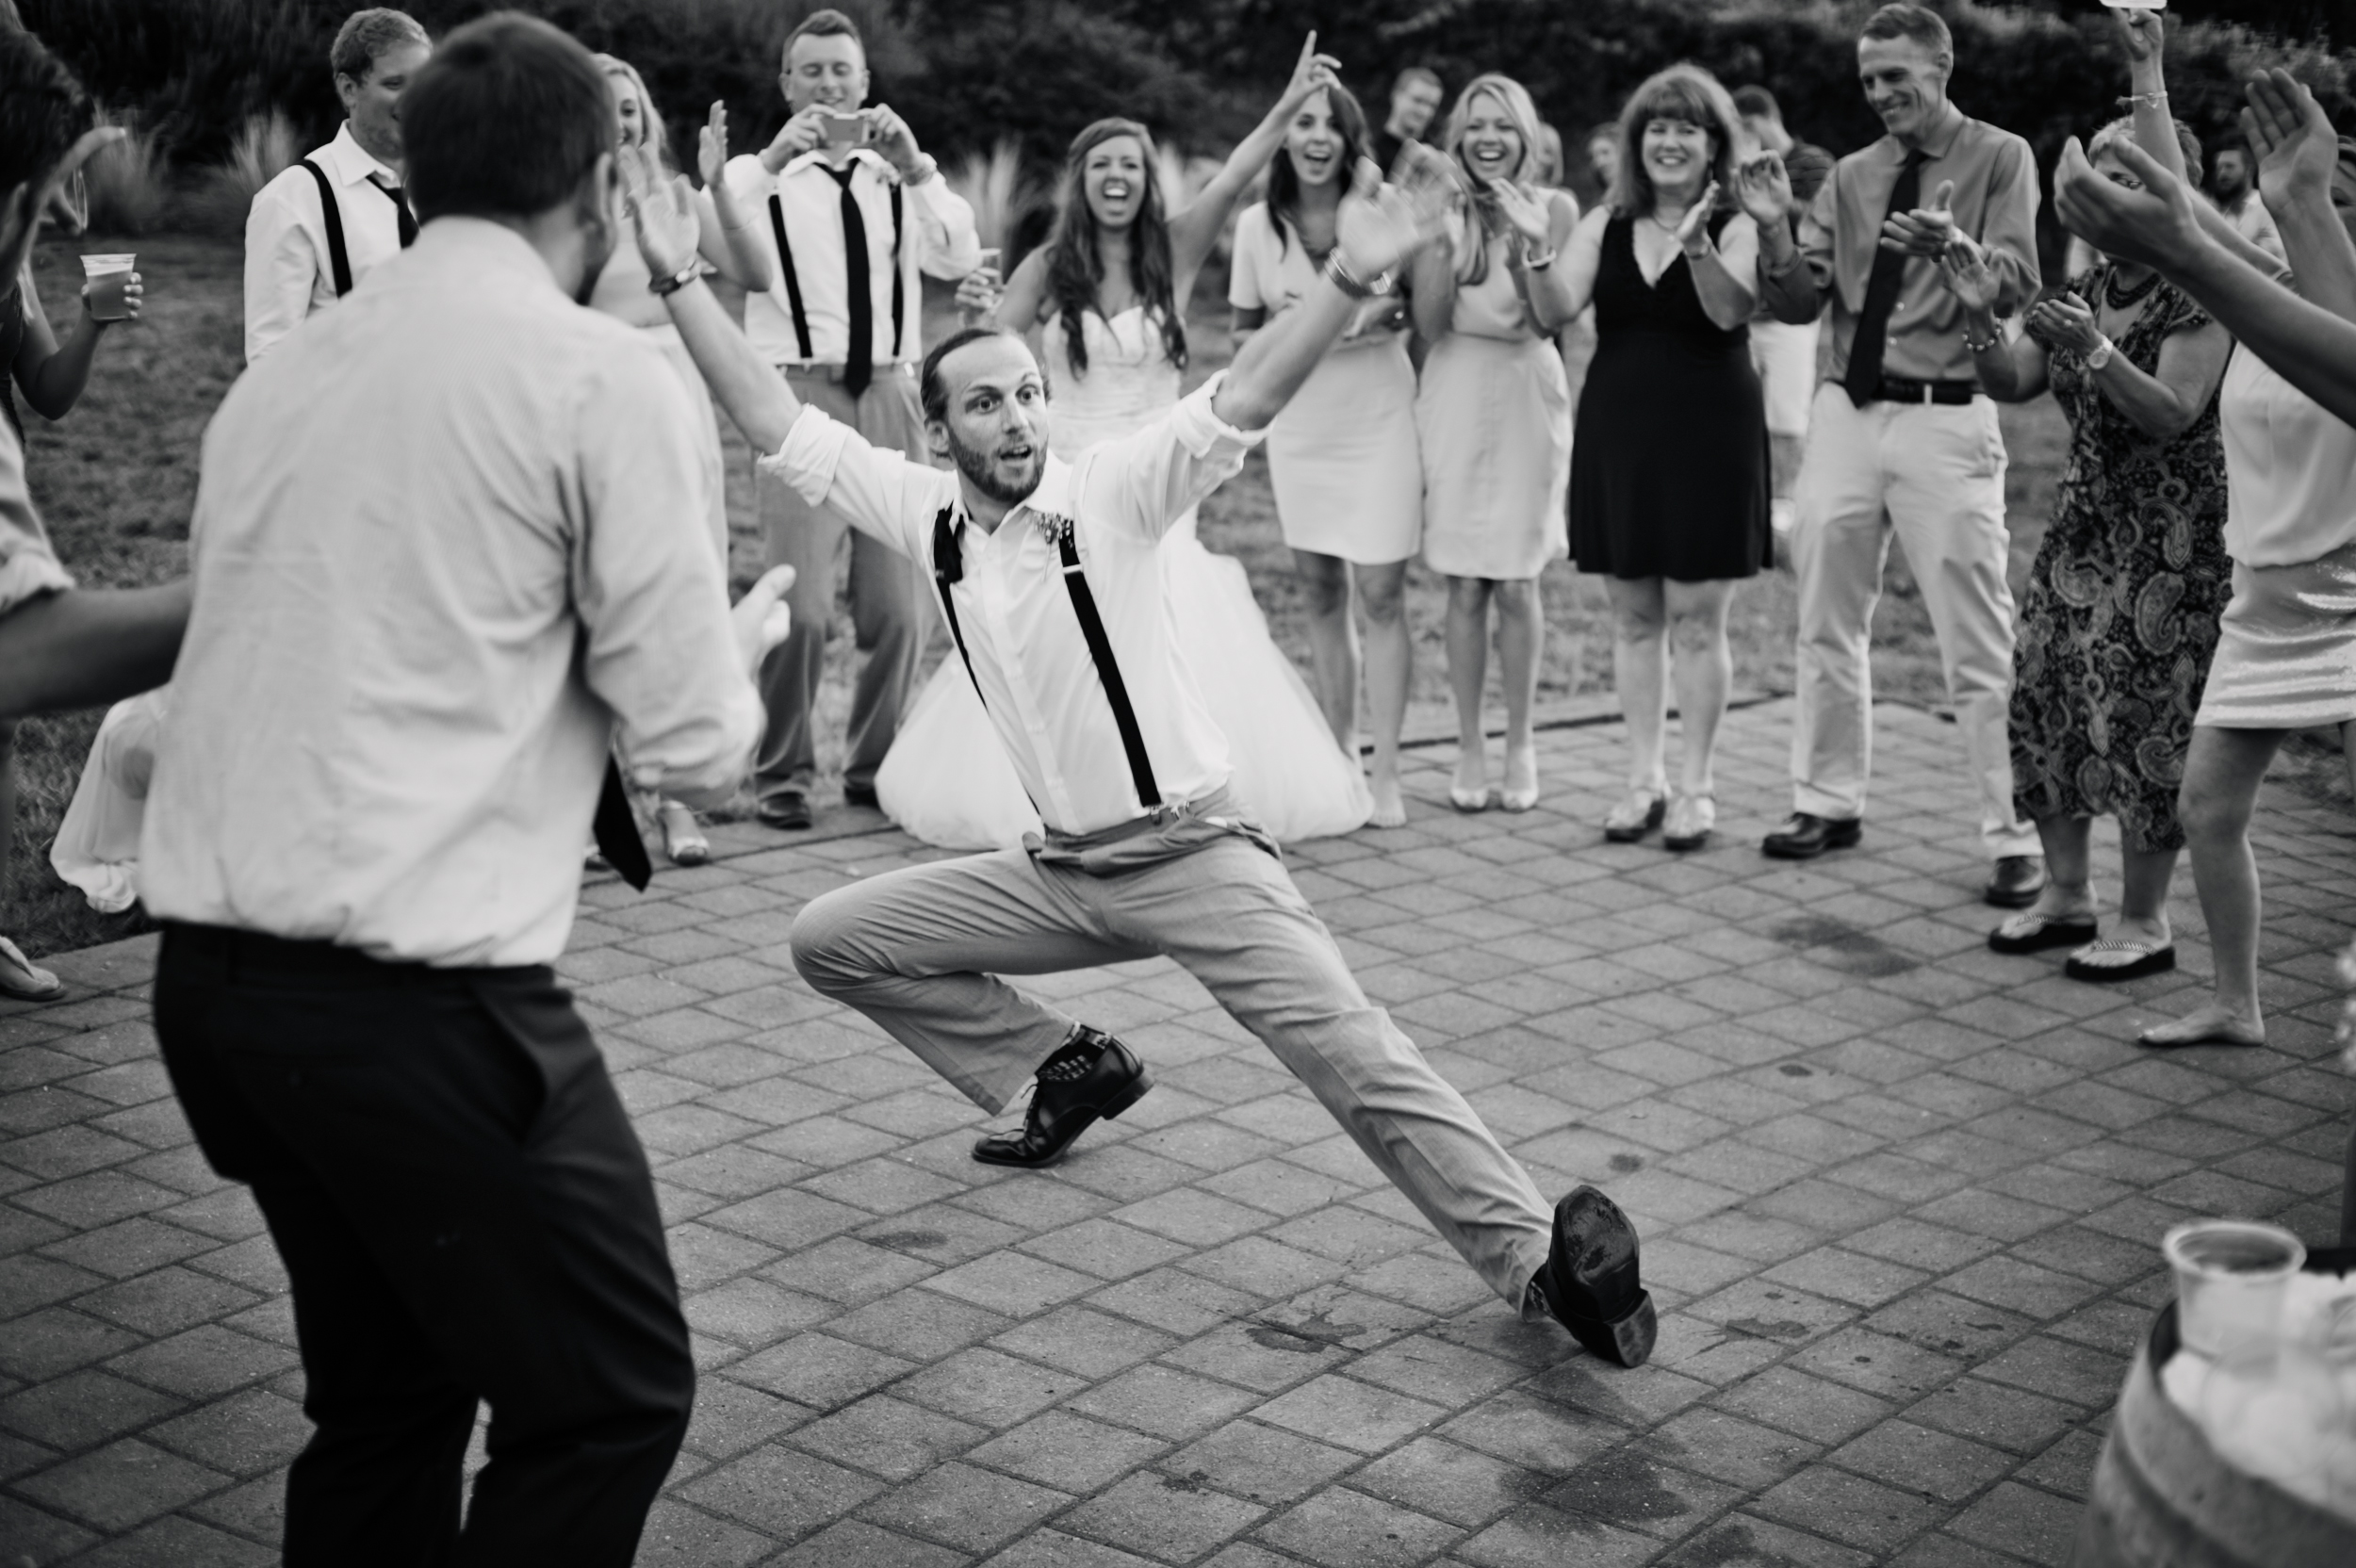 Portrait of man doing Russian Dance at wedding by Ripe Photography.